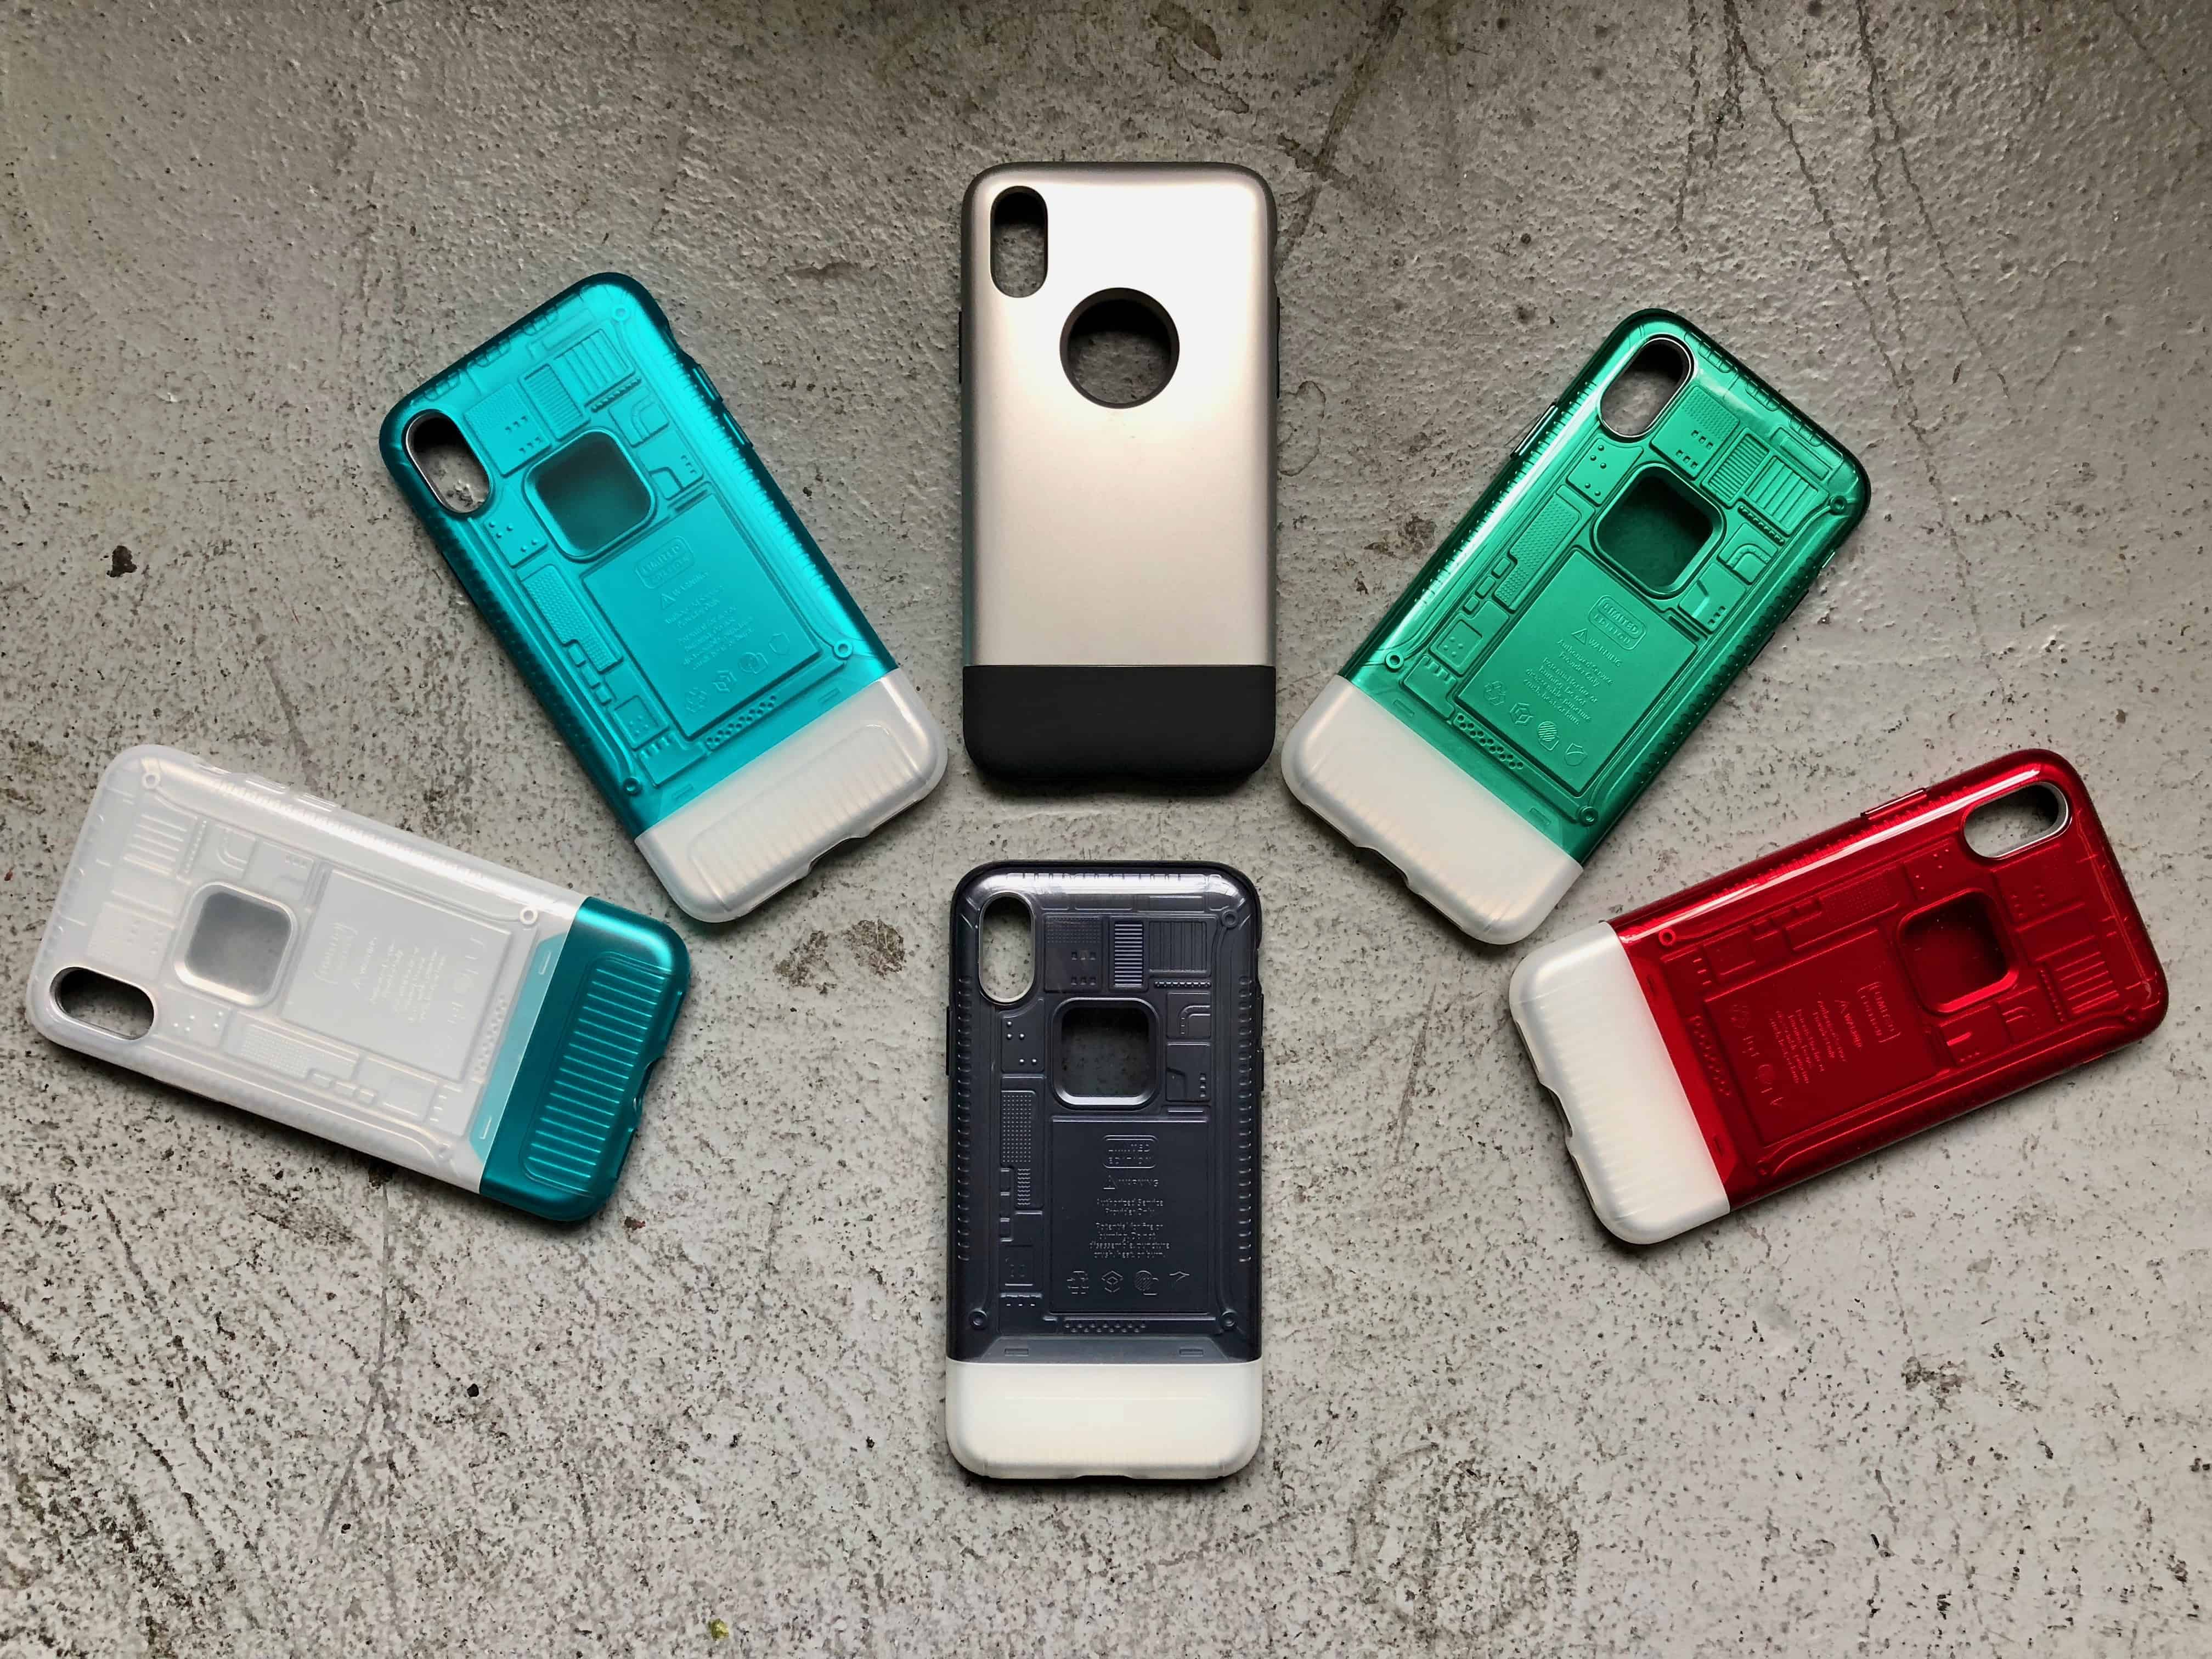 timeless design 4b4b7 7c874 Spiffy new Spigen iPhone X cases look like original iMac and iPhone